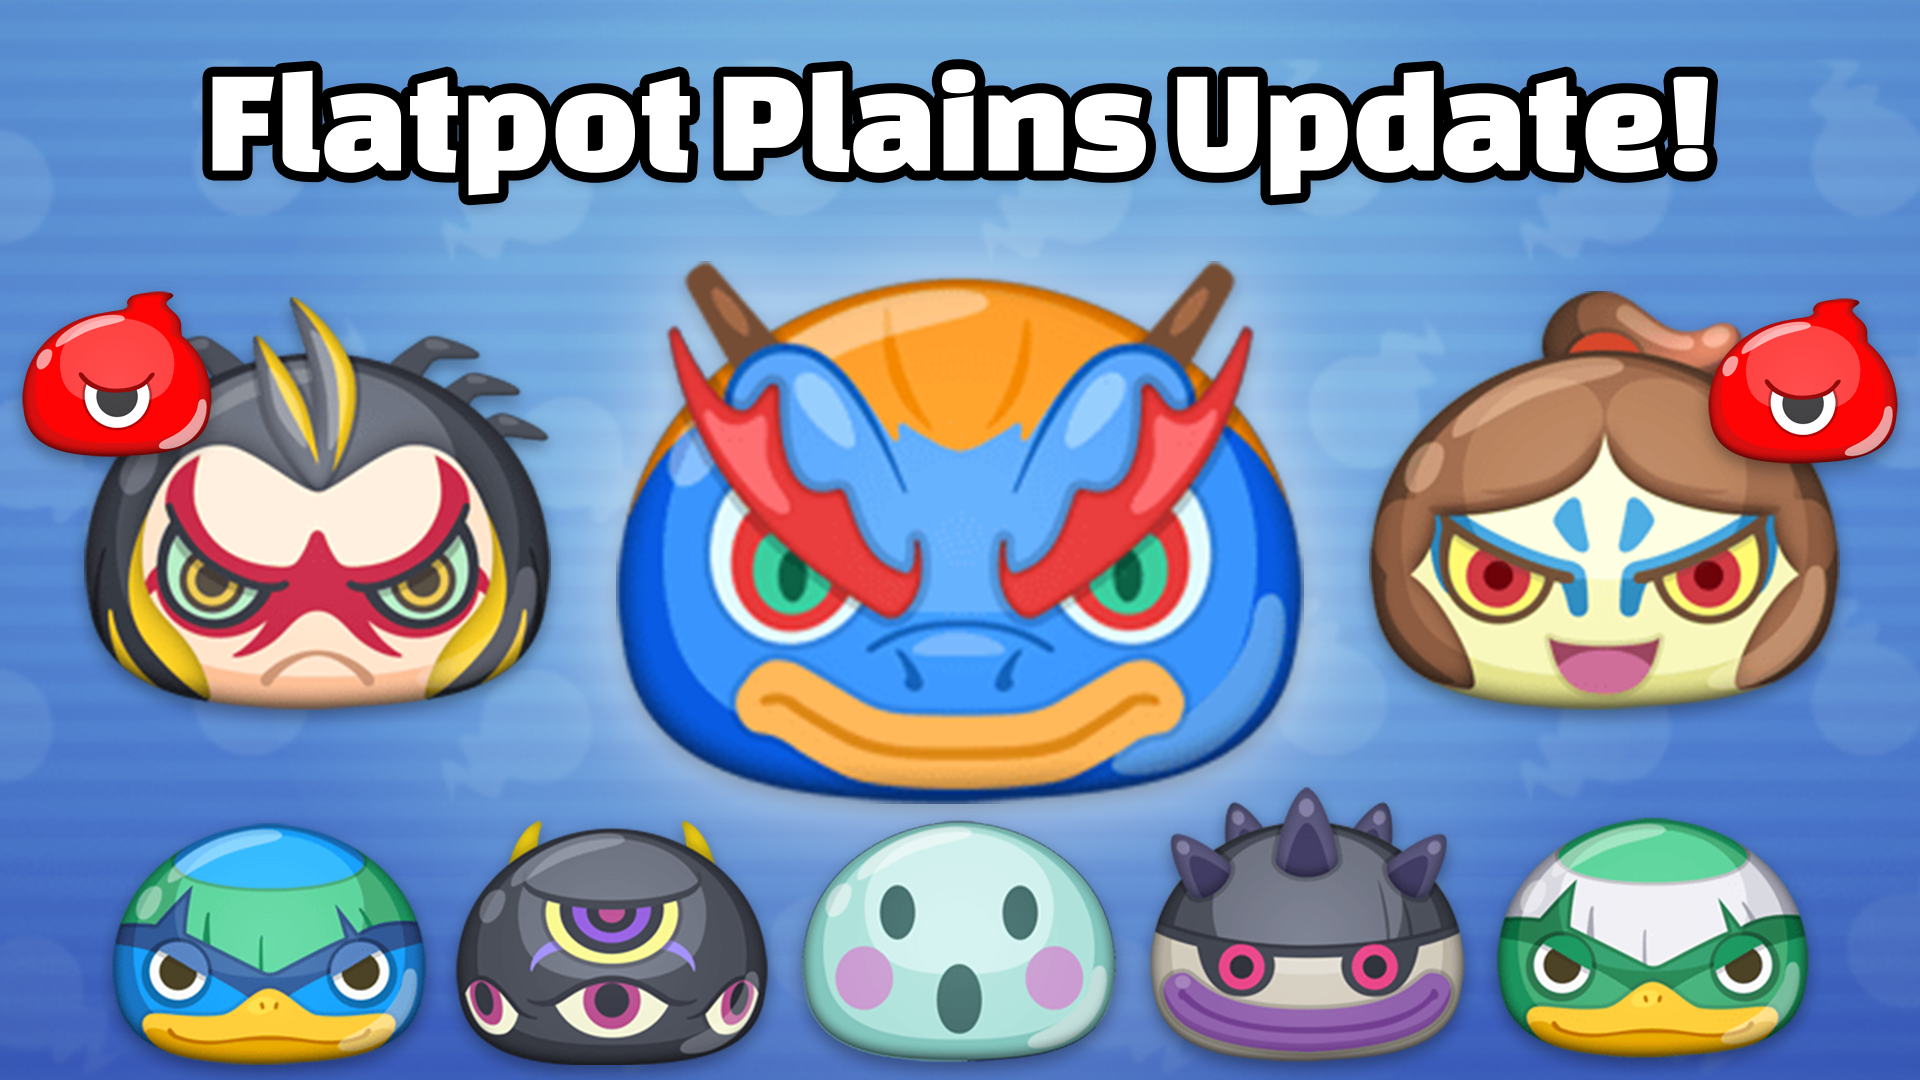 Yo-kai Watch Wibble Wobble Flatpot Plains Update Guide